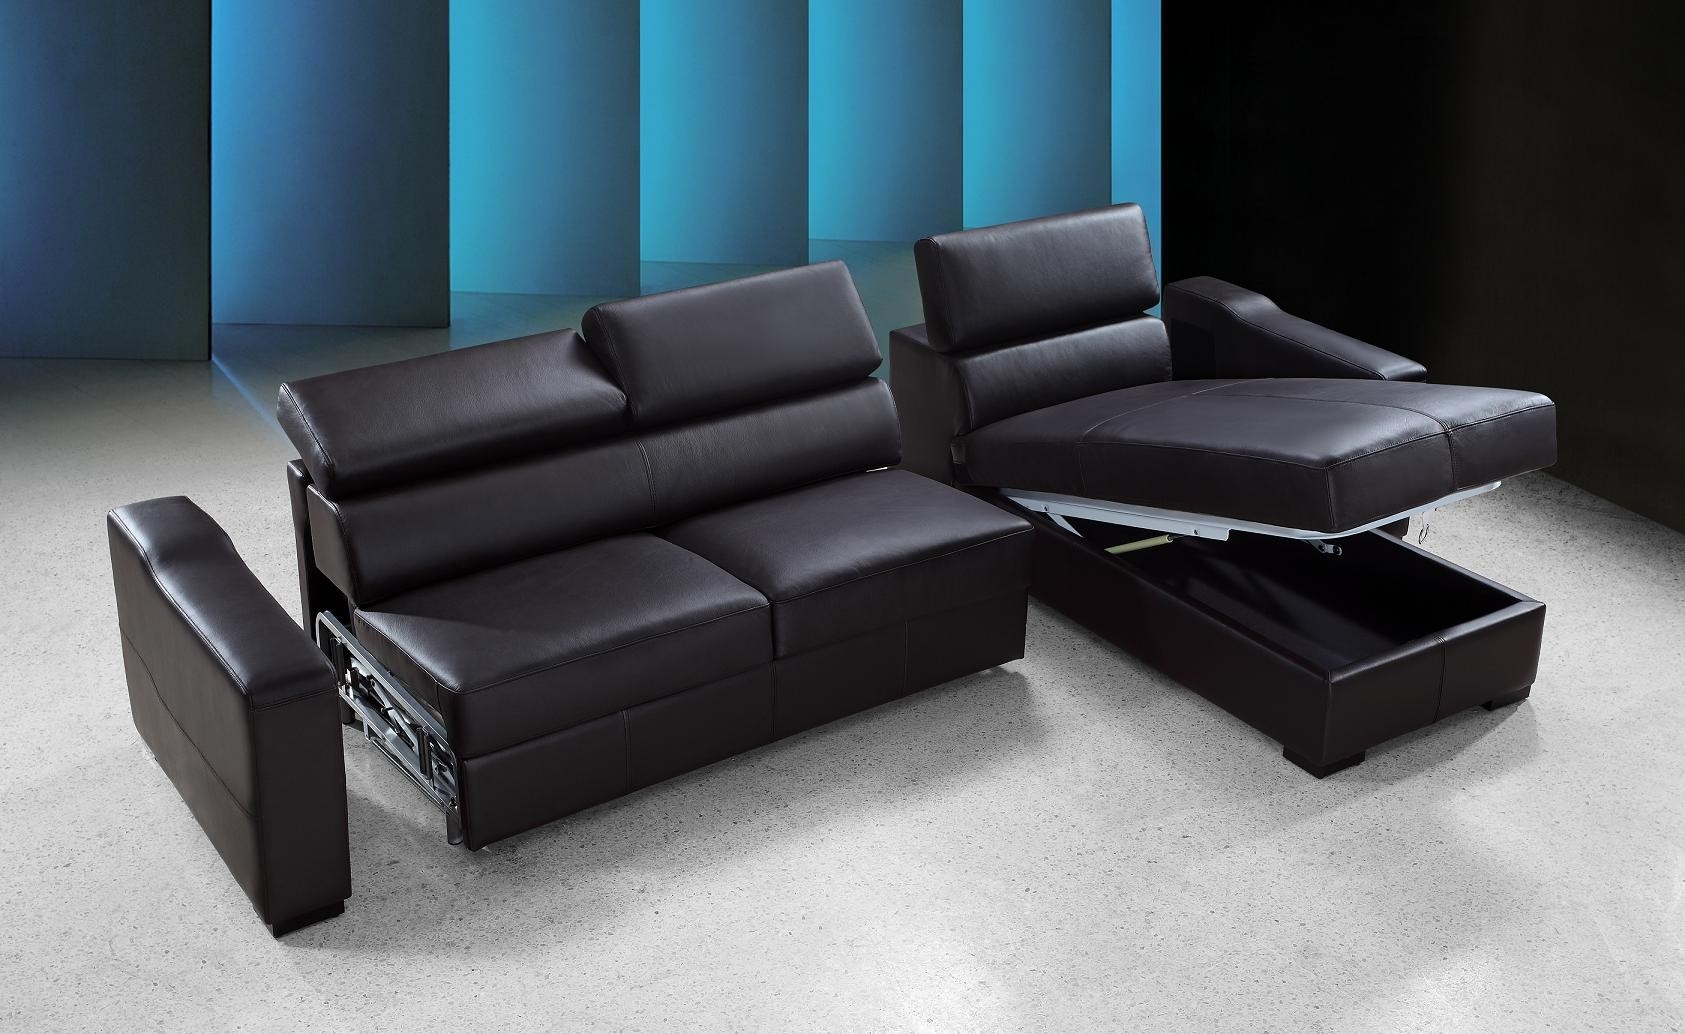 Stylish Sofa Sleeper With Storage Within Black Color Formal Design Ideas